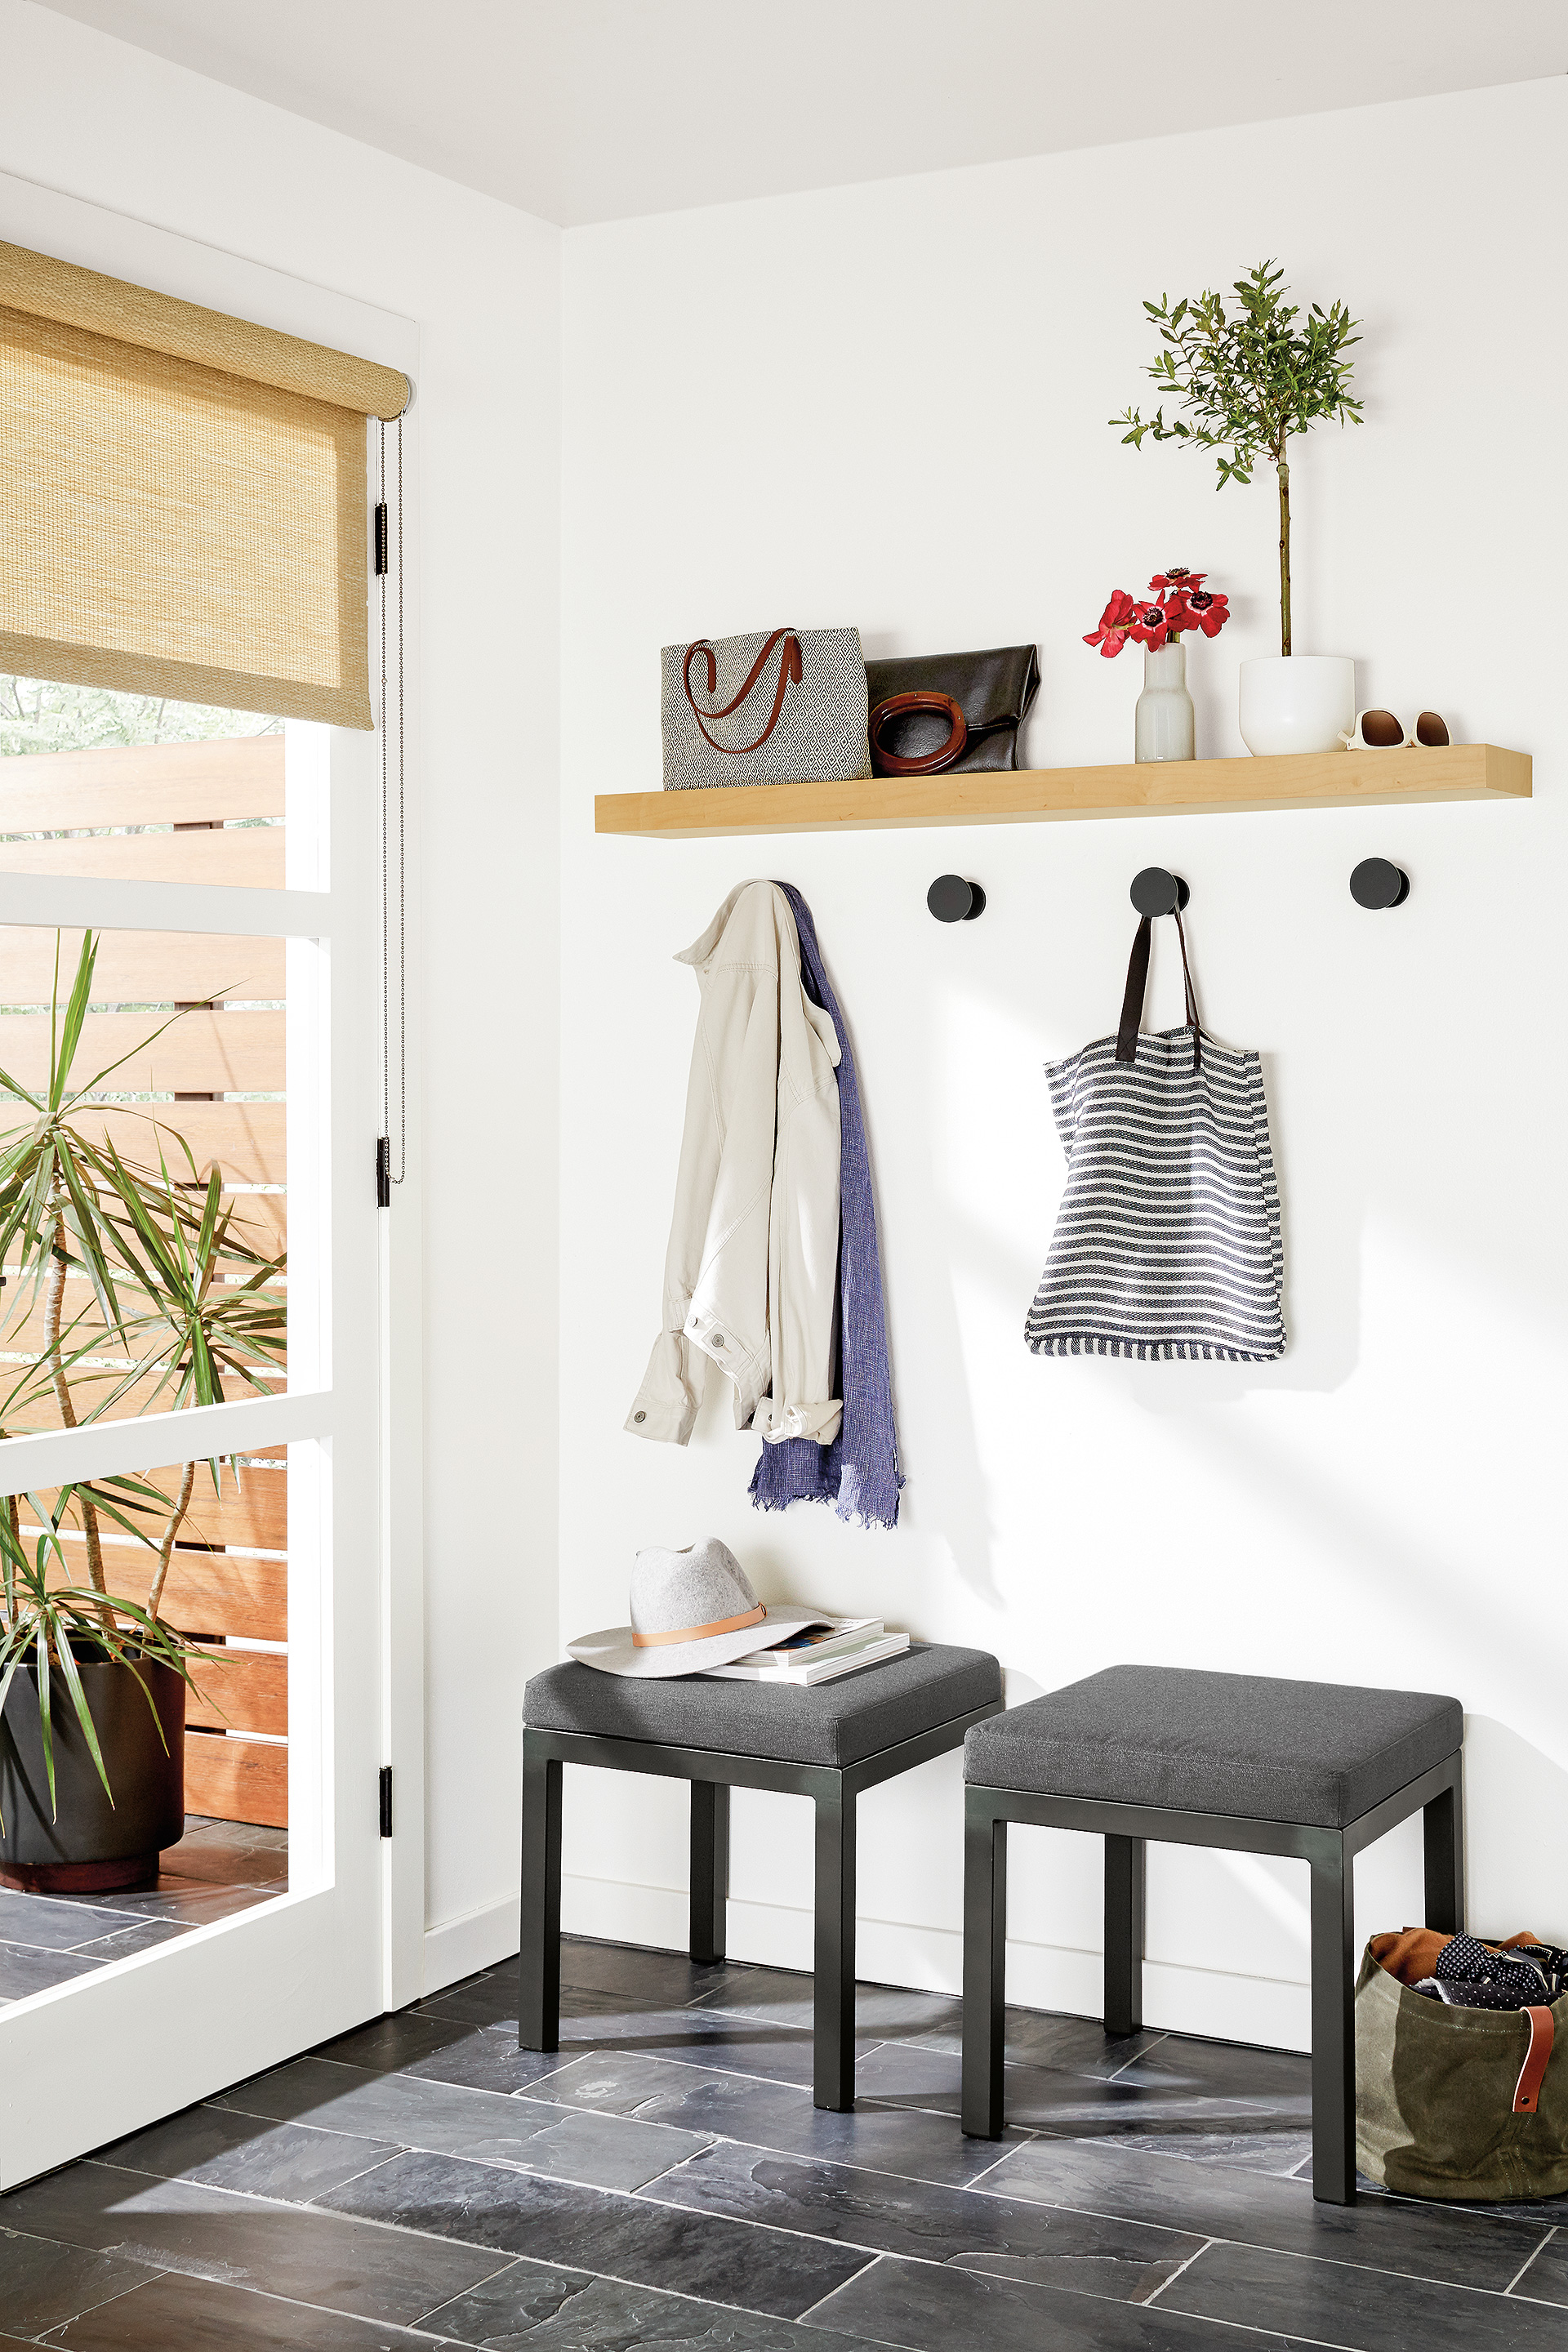 How To Use Floating Wall Shelves - Room & Board